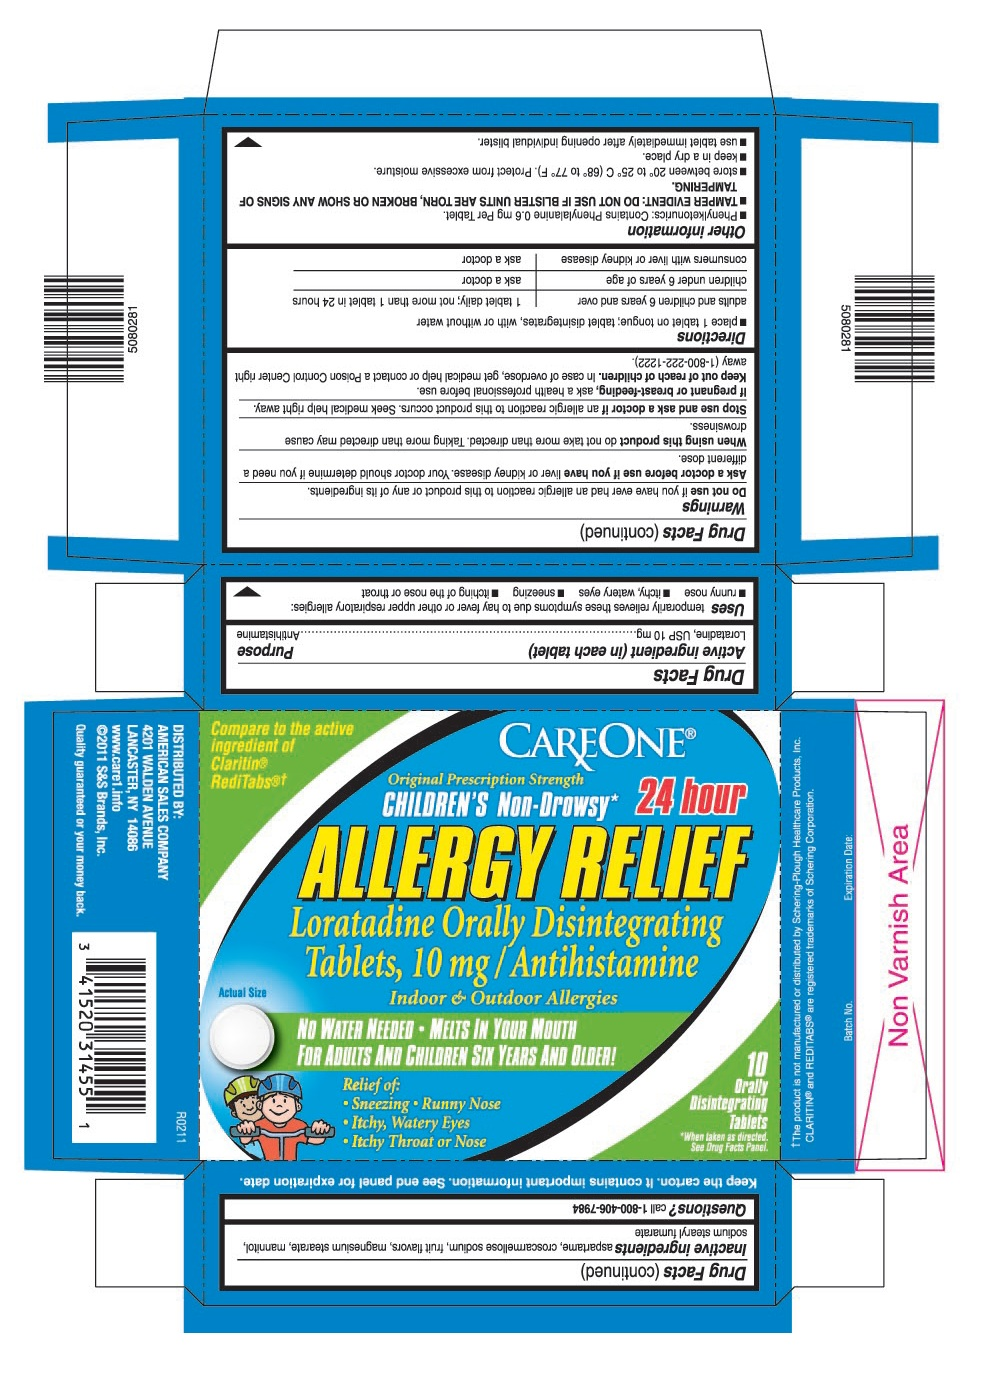 This is the bottle carton label for Careone 10 count Loratadine ODT, 10 mg (Claritin Kids).